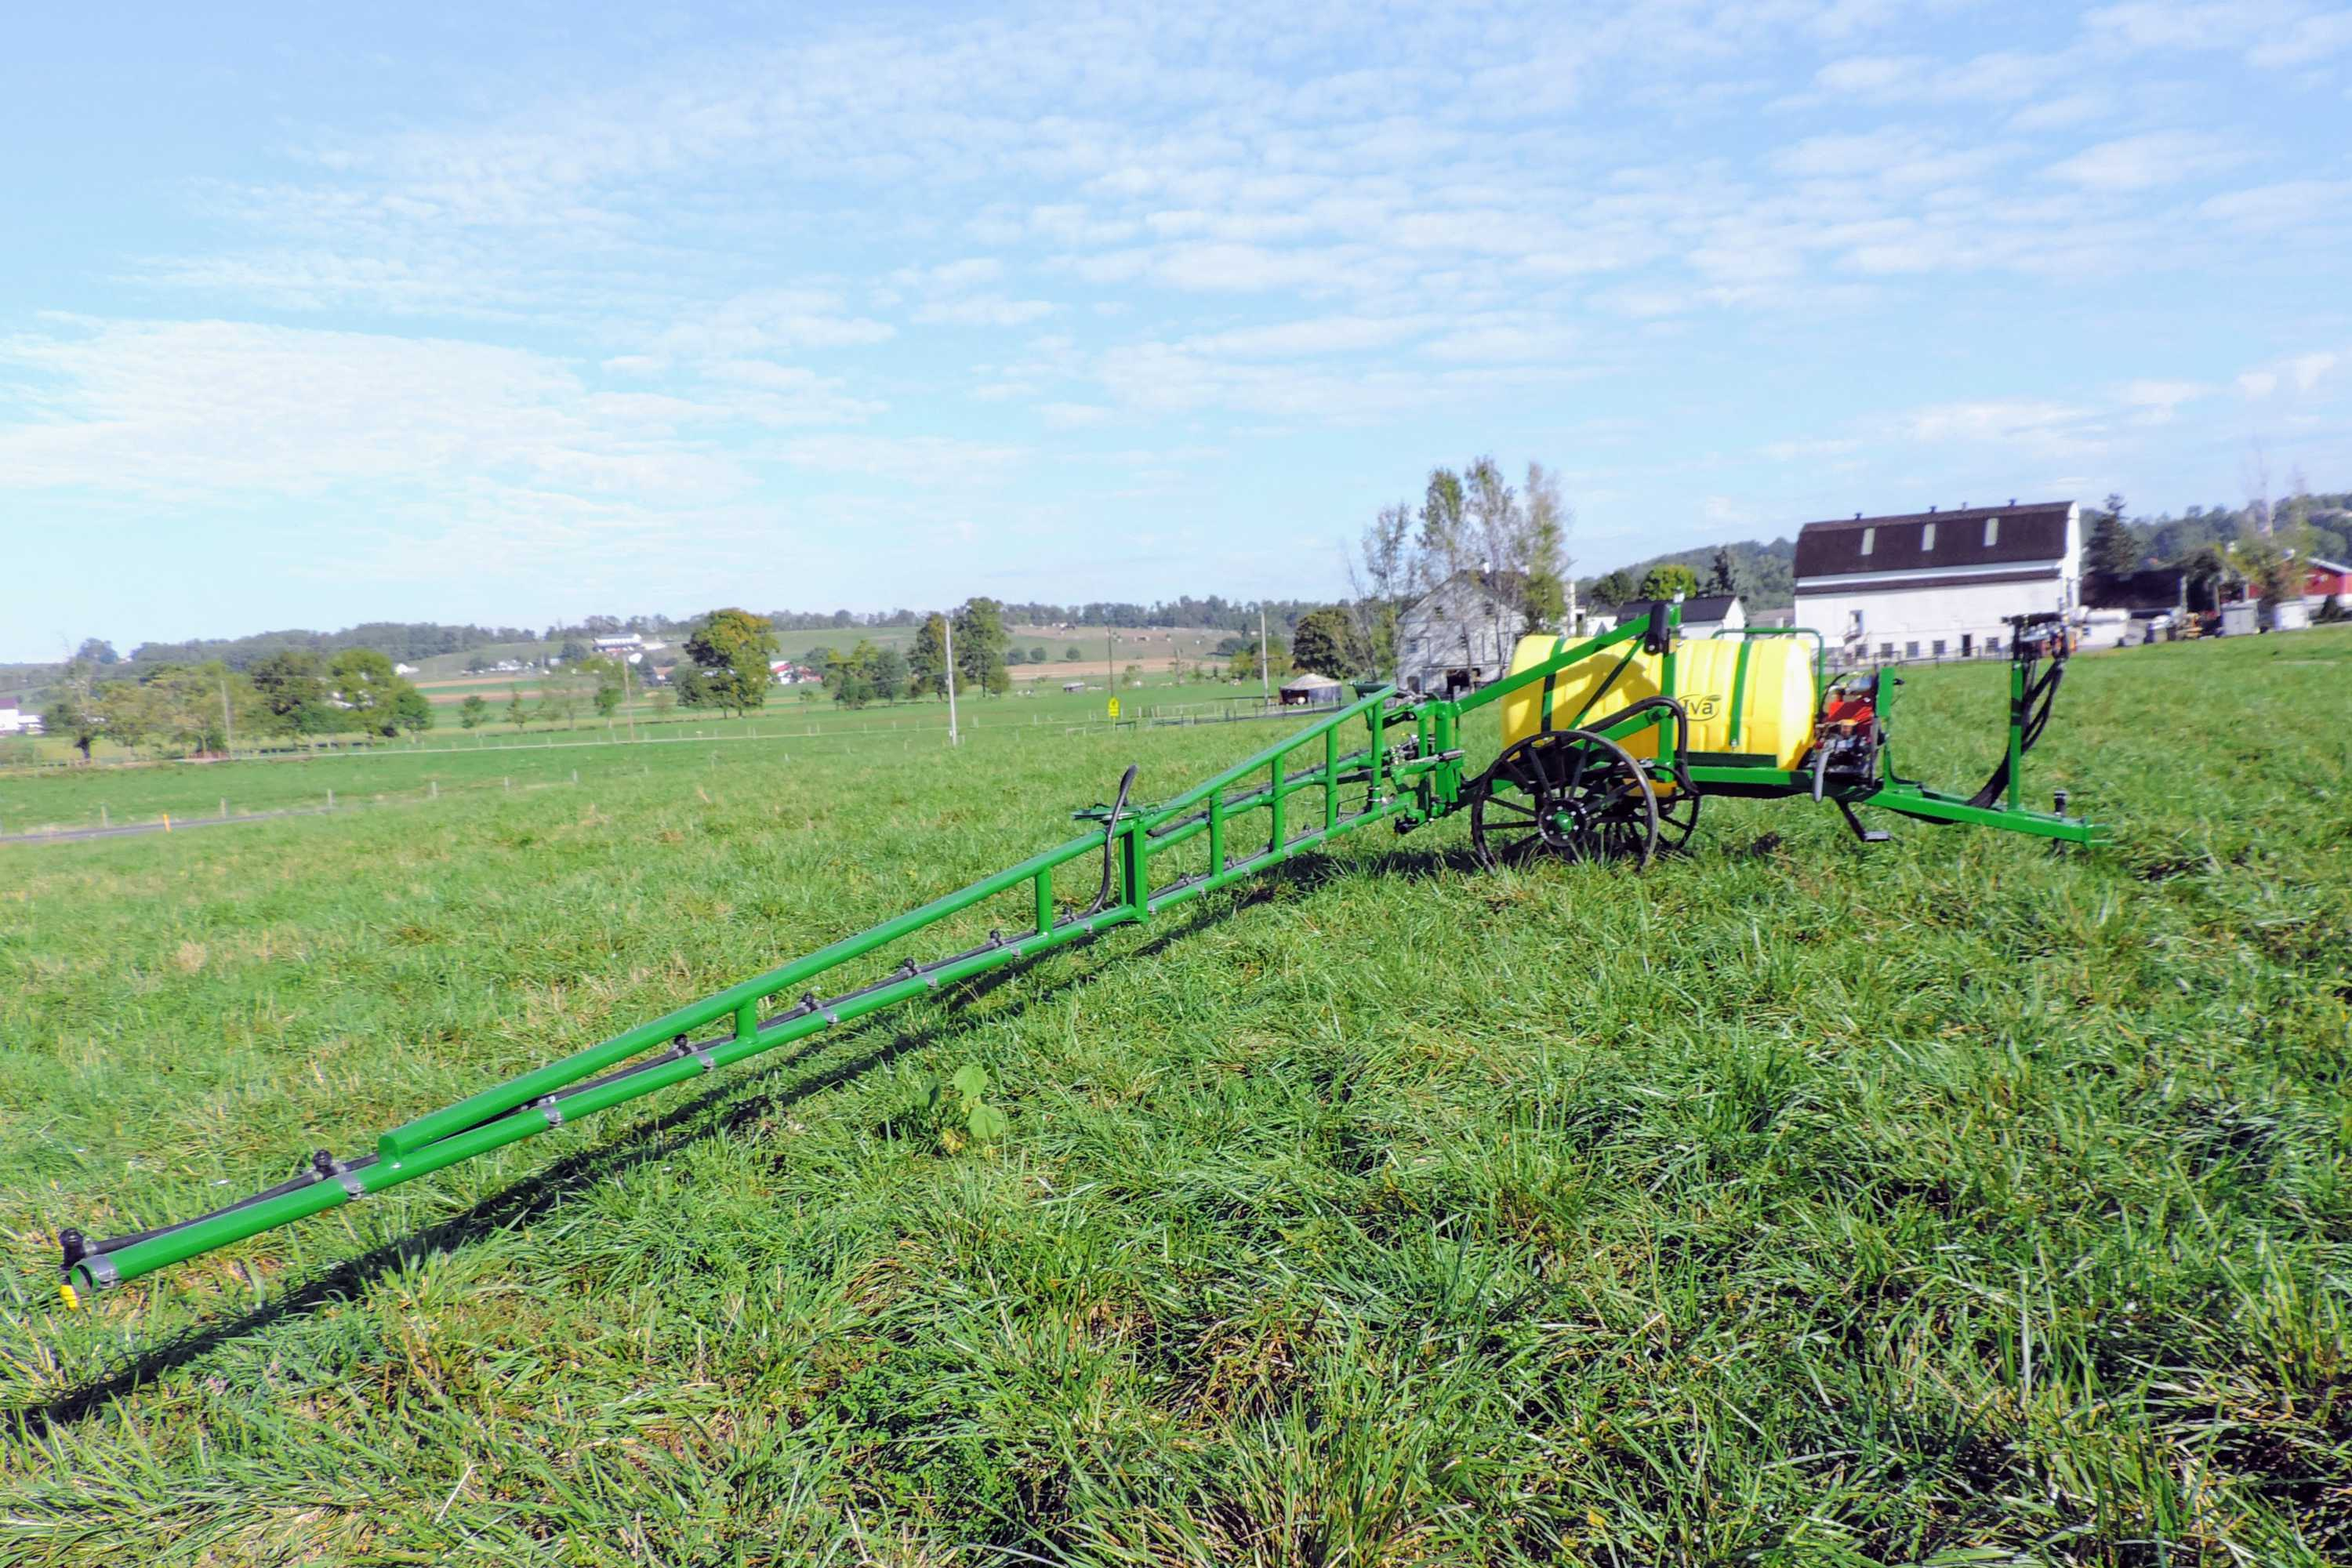 200 gallon trailer sprayer with 25' single sided boom